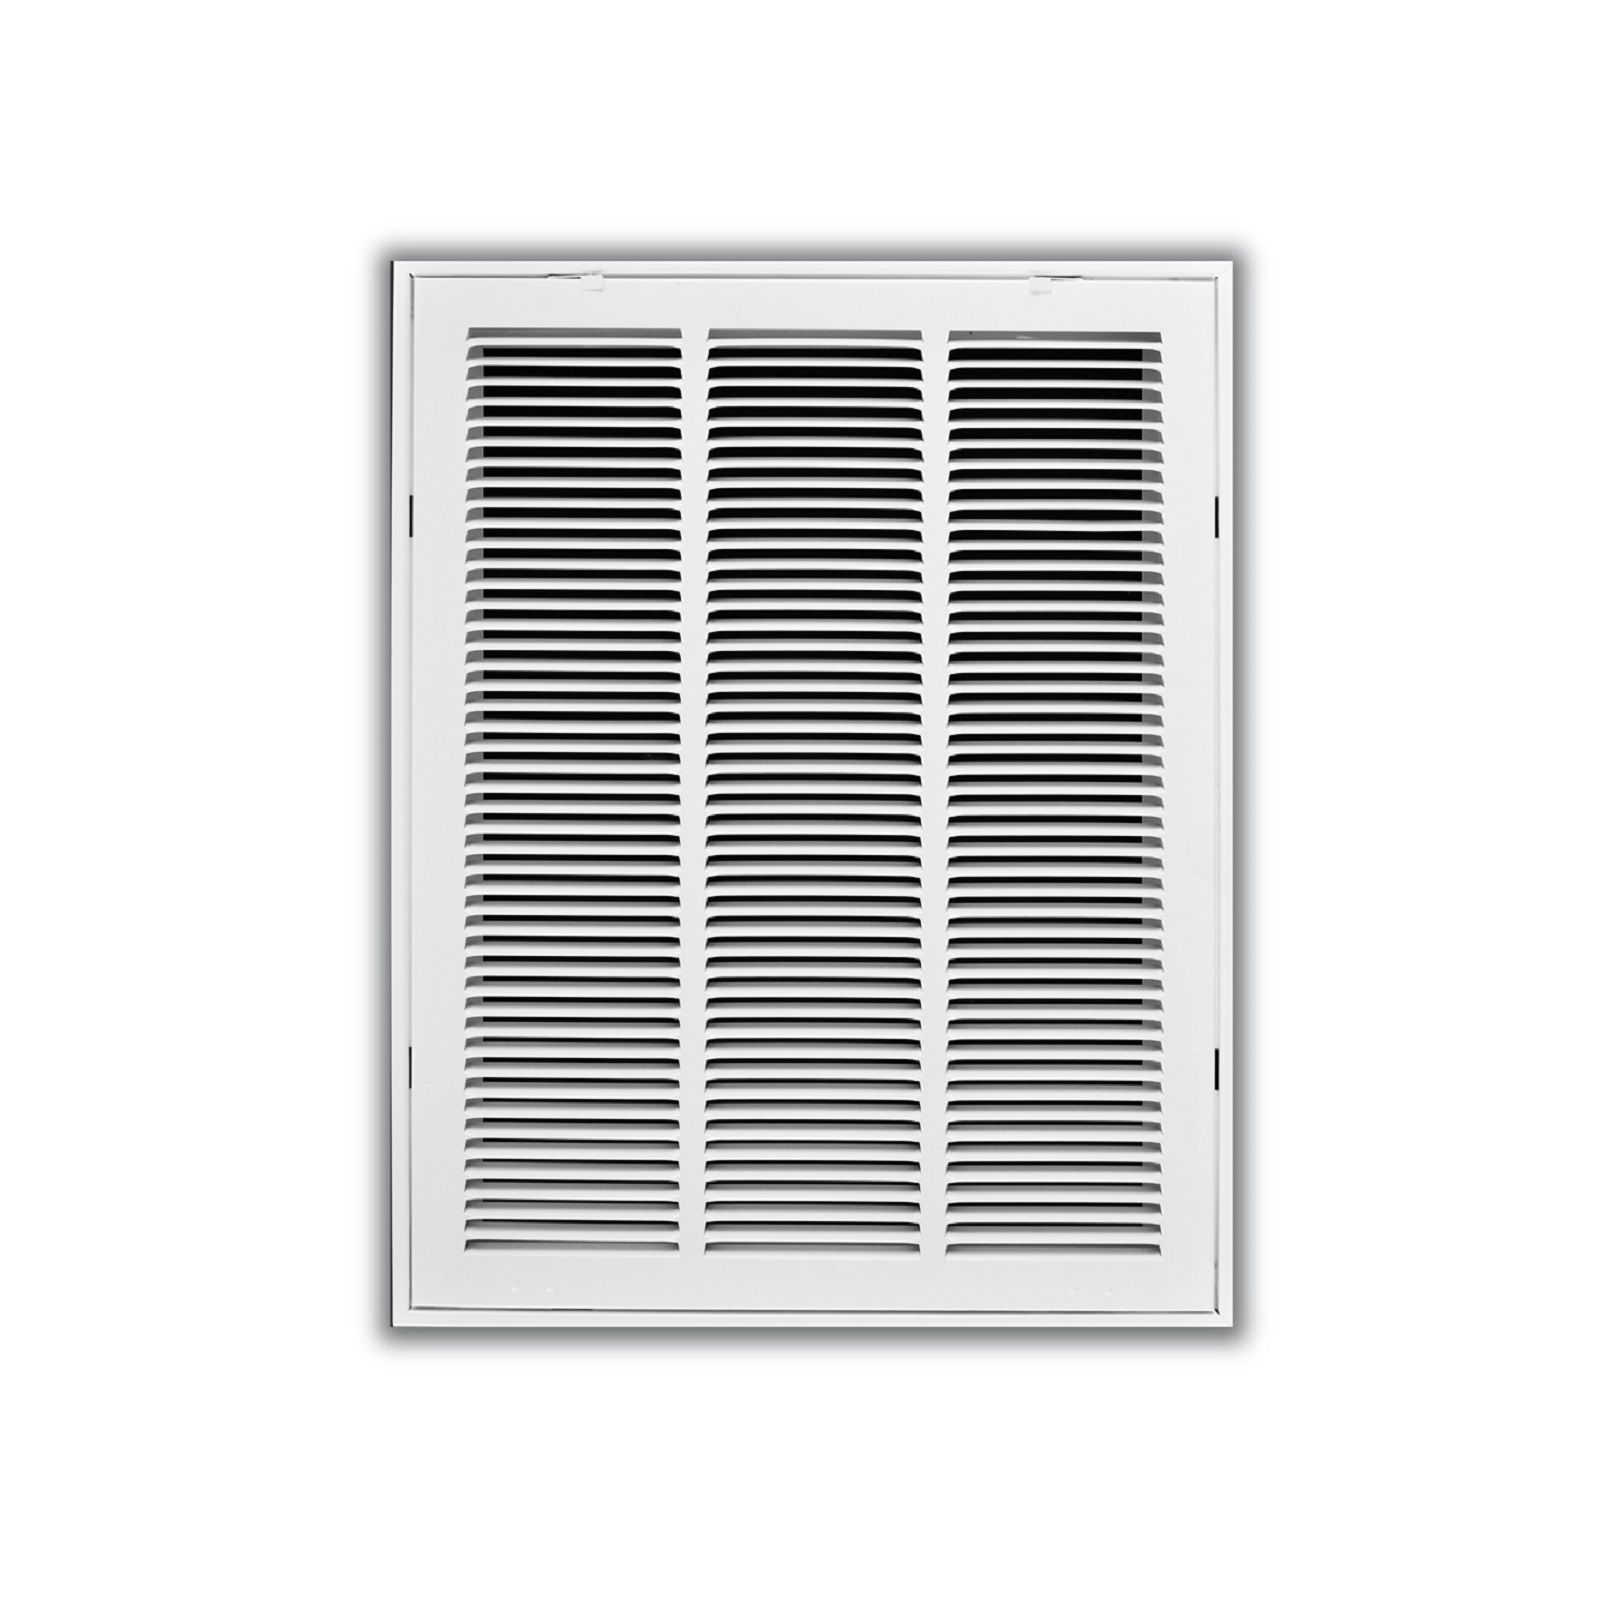 "TRUaire 190 08X08 - Steel Return Air Filter Grille With Fixed Hinged Face, White, 08"" X 08"""